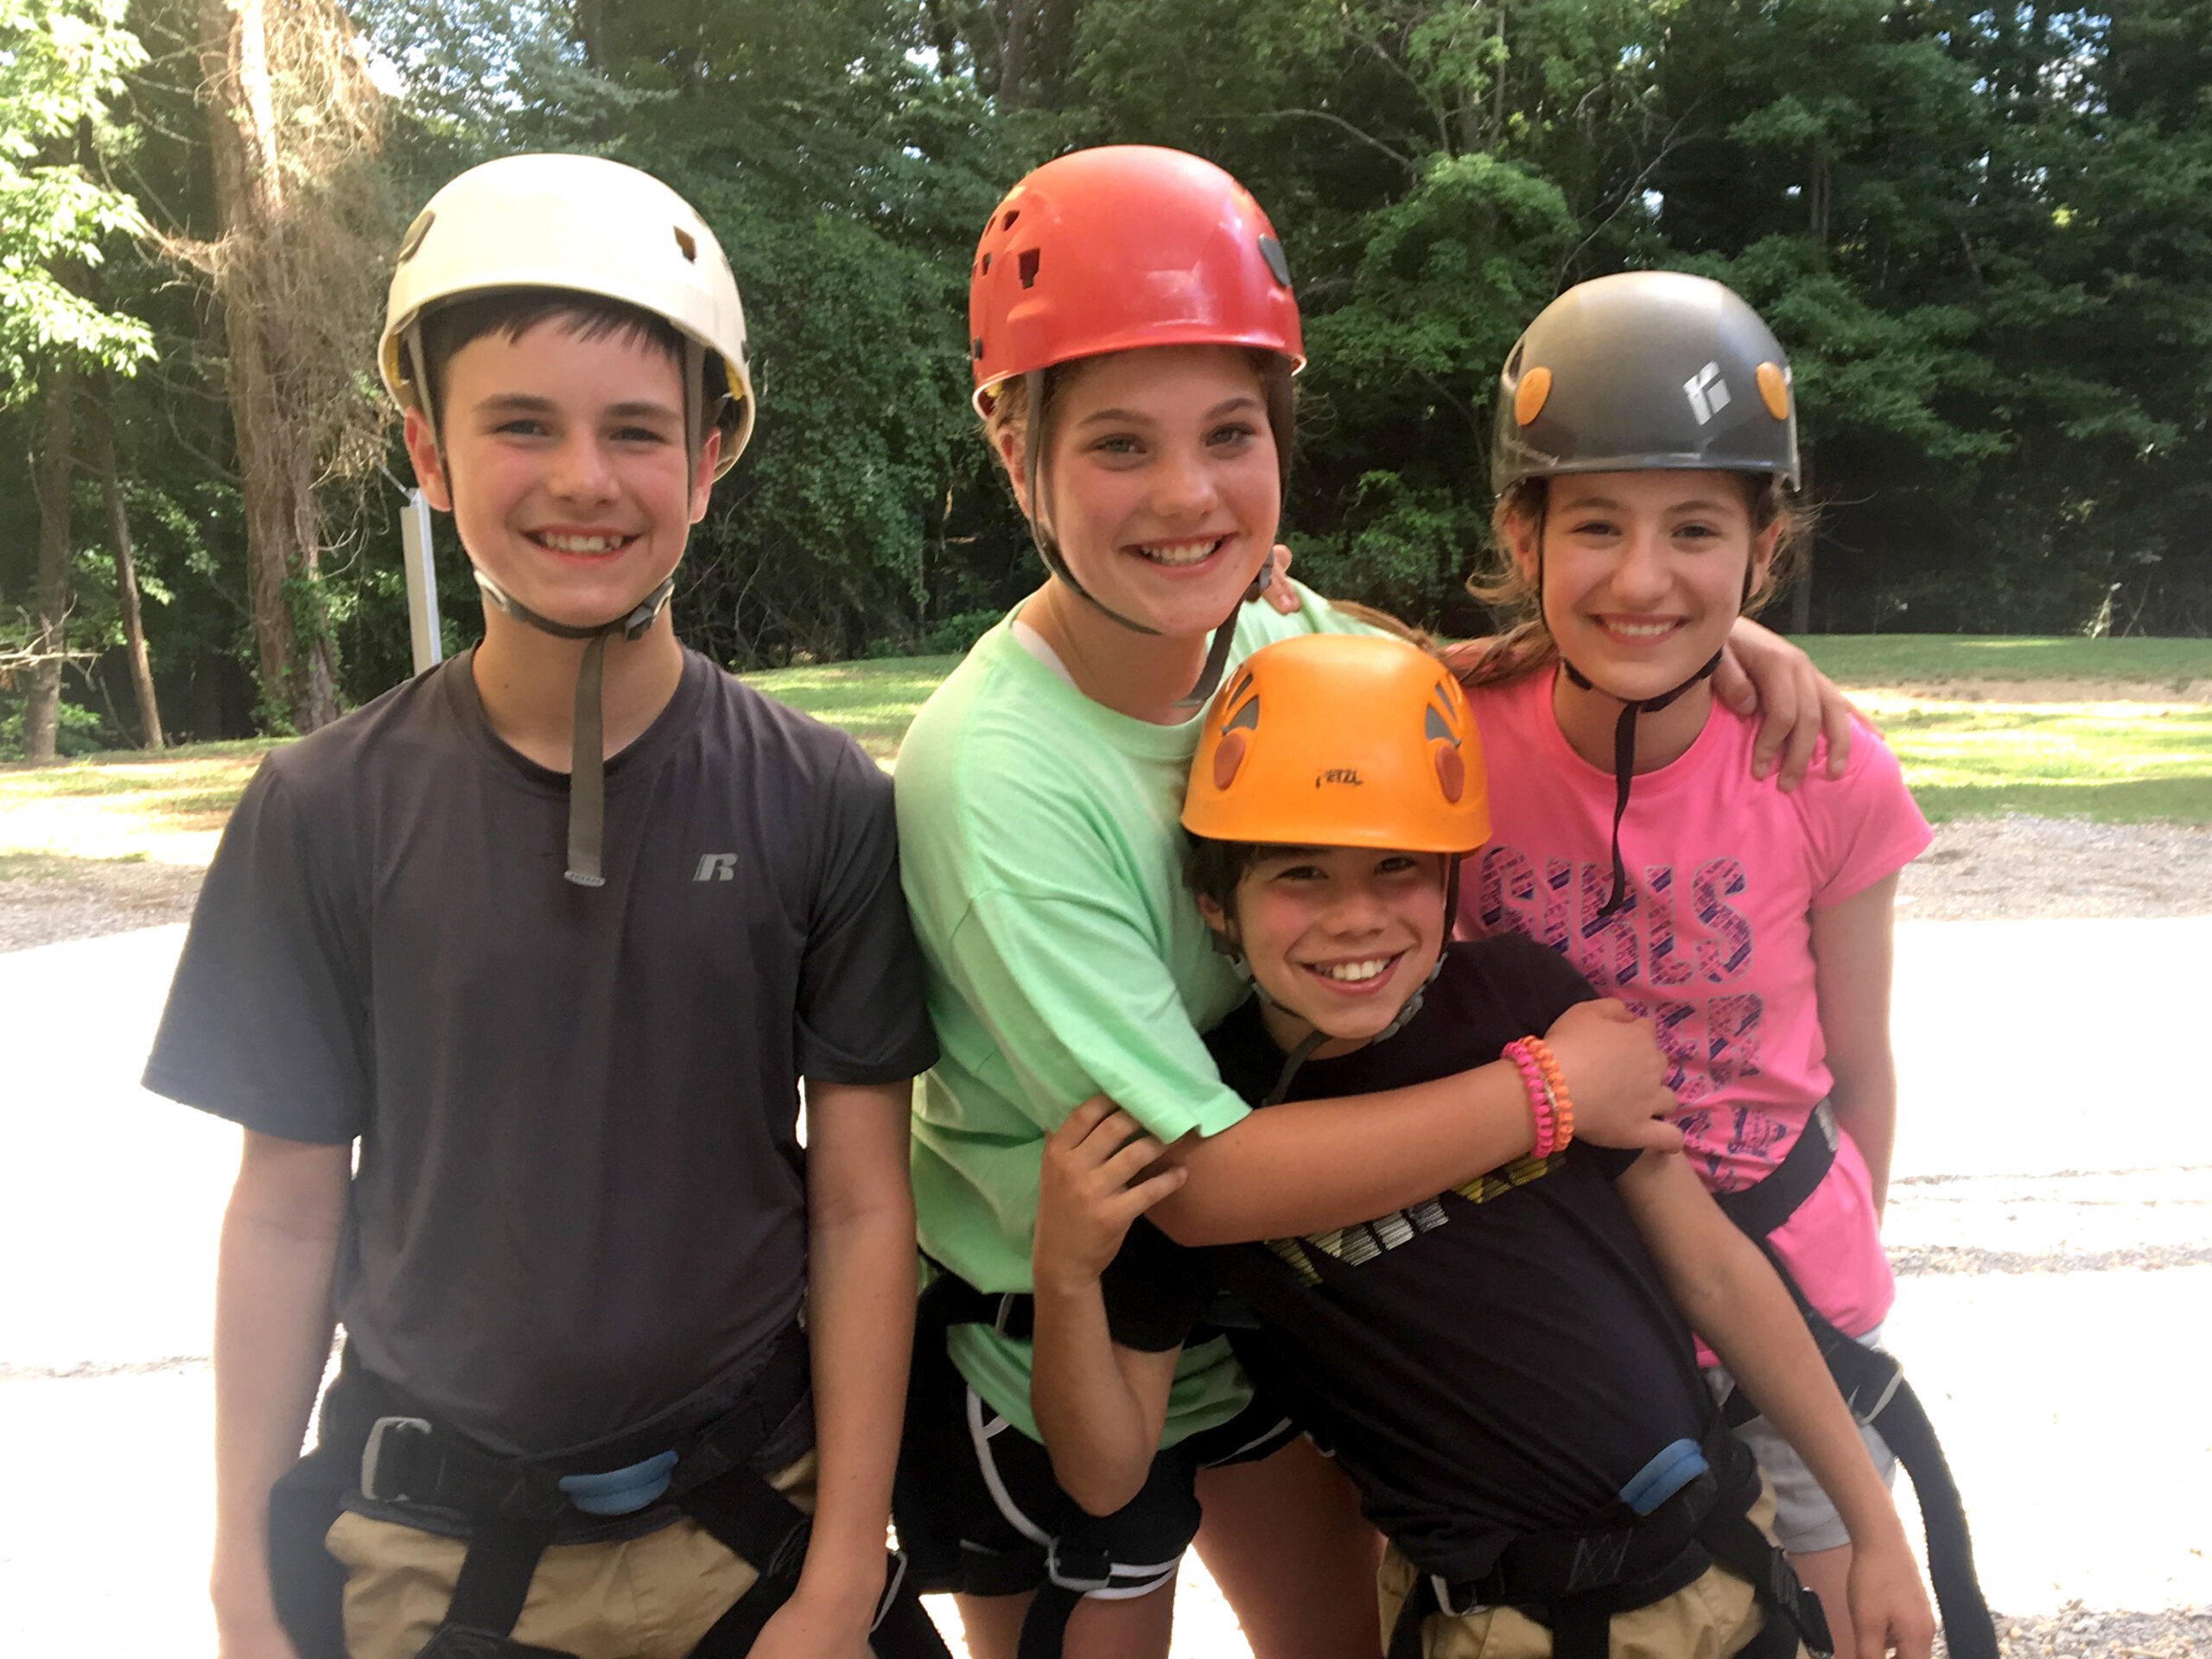 friends at camp in safety helmets